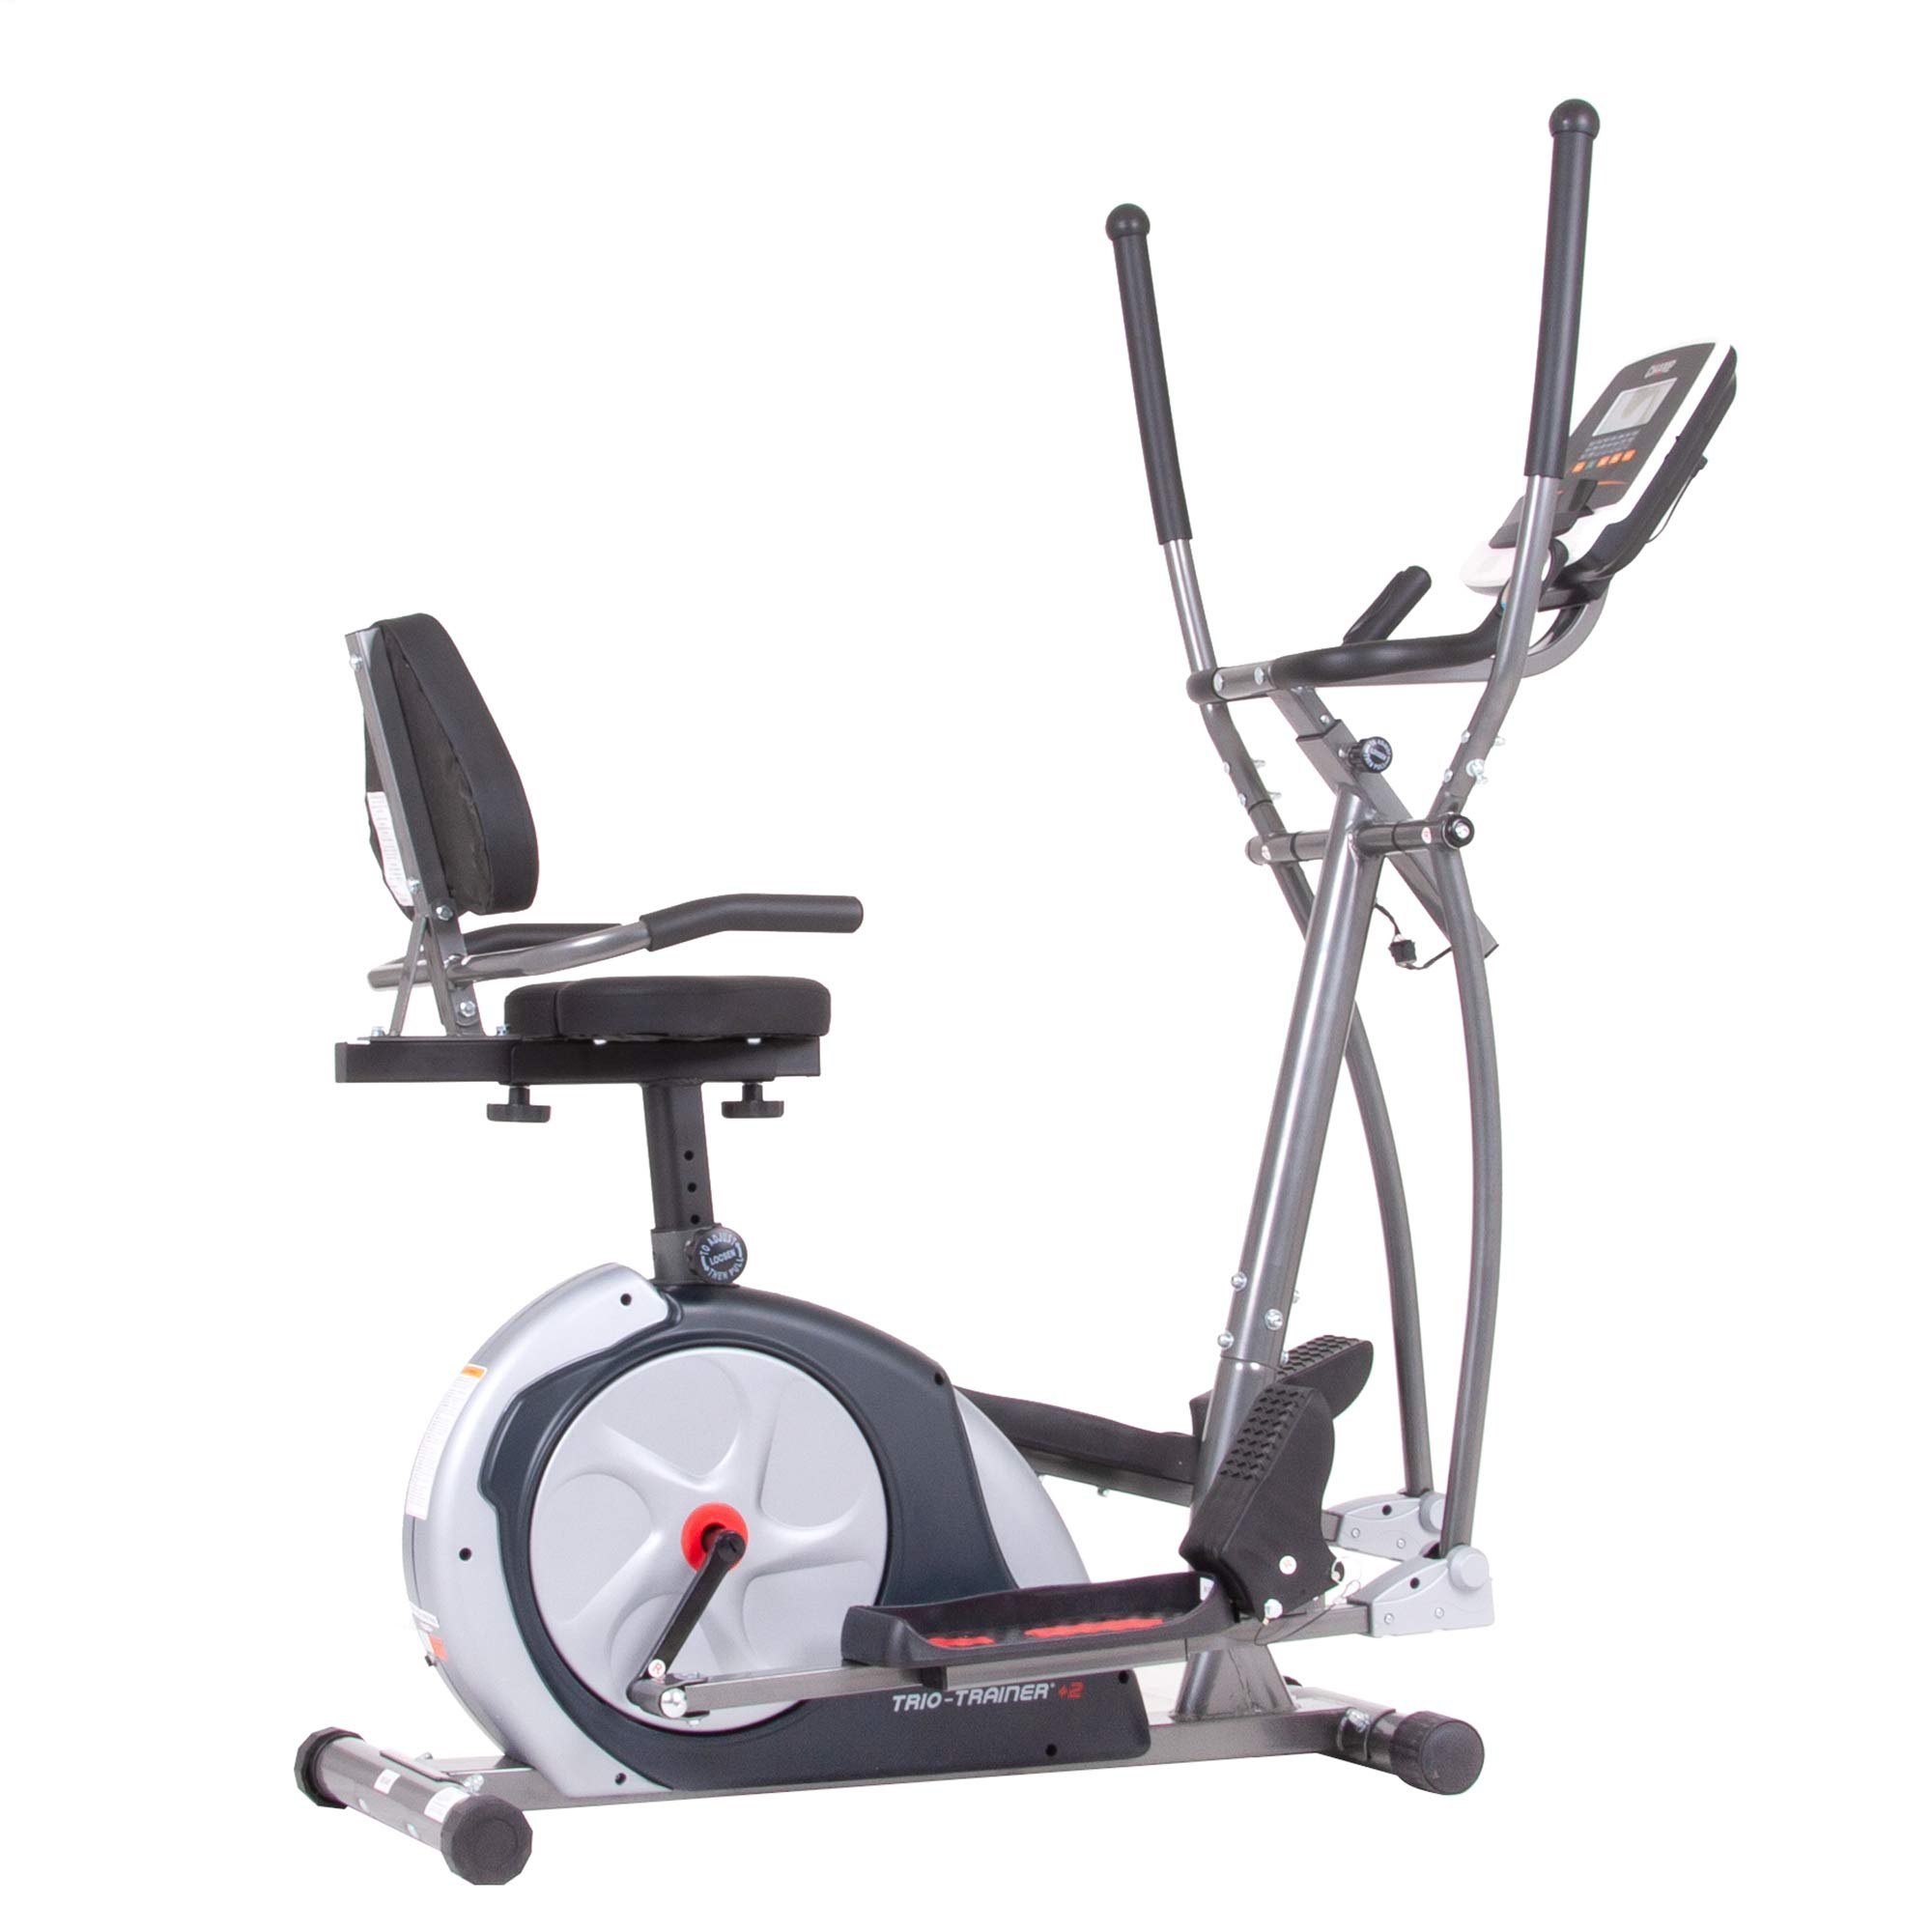 Body Champ 3-in-1 Trio Trainer Plus Two, Silver by Body Champ